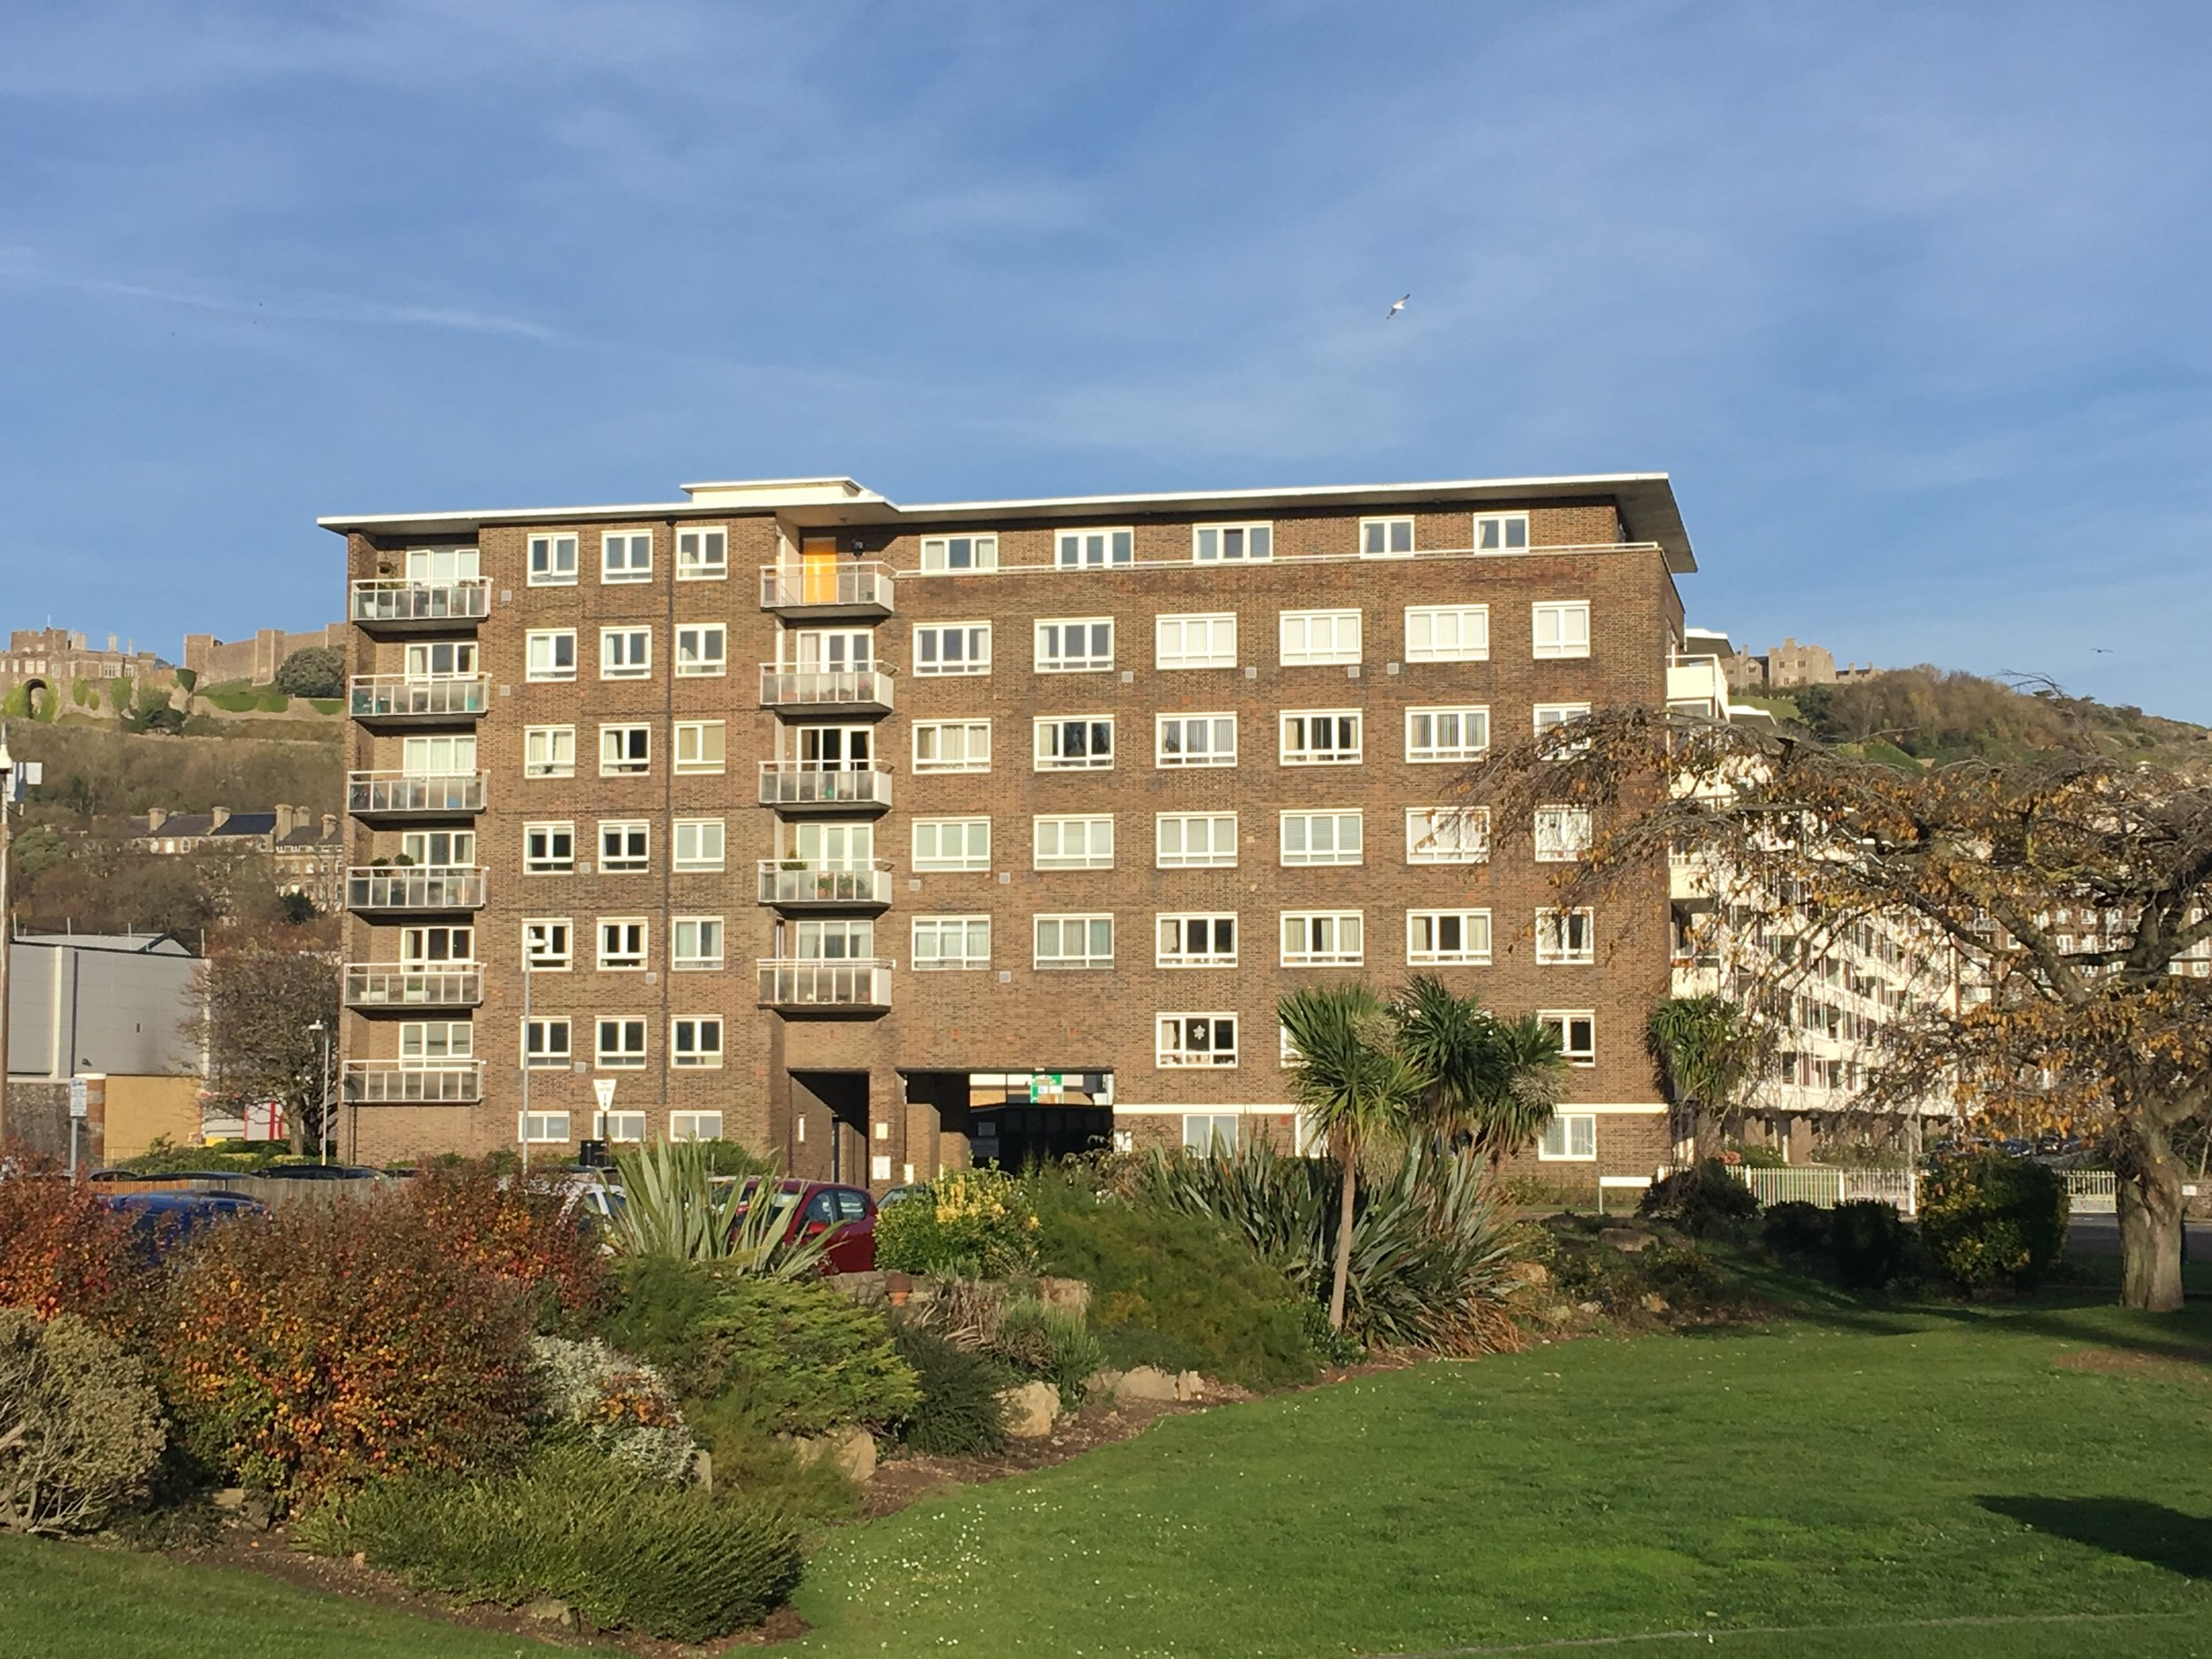 1950s flats in Dover